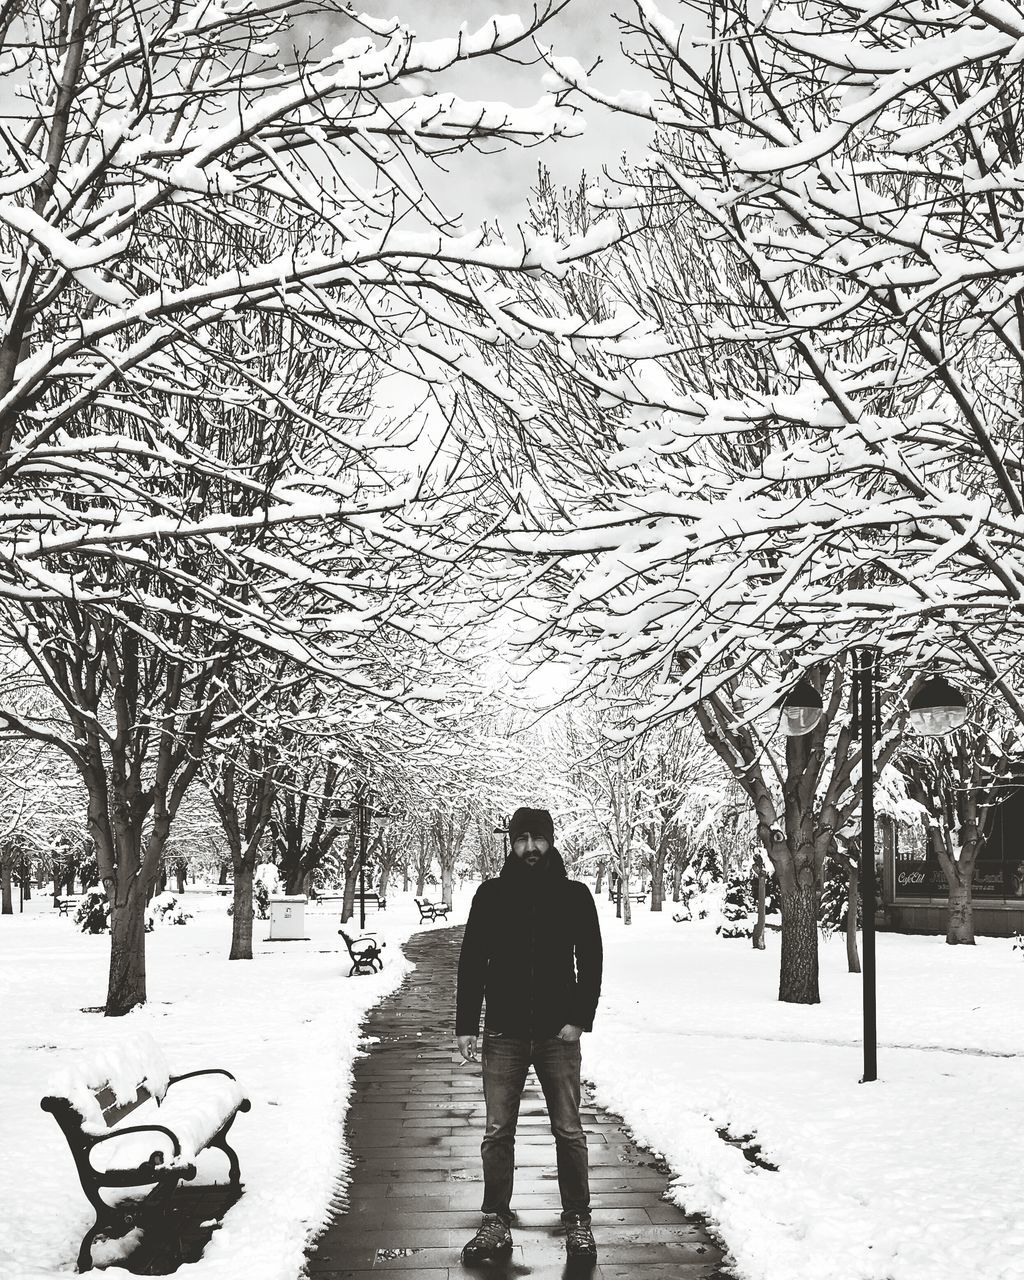 Full Length Of Man Standing Amidst Snow Covered Bare Trees On Footpath At Park